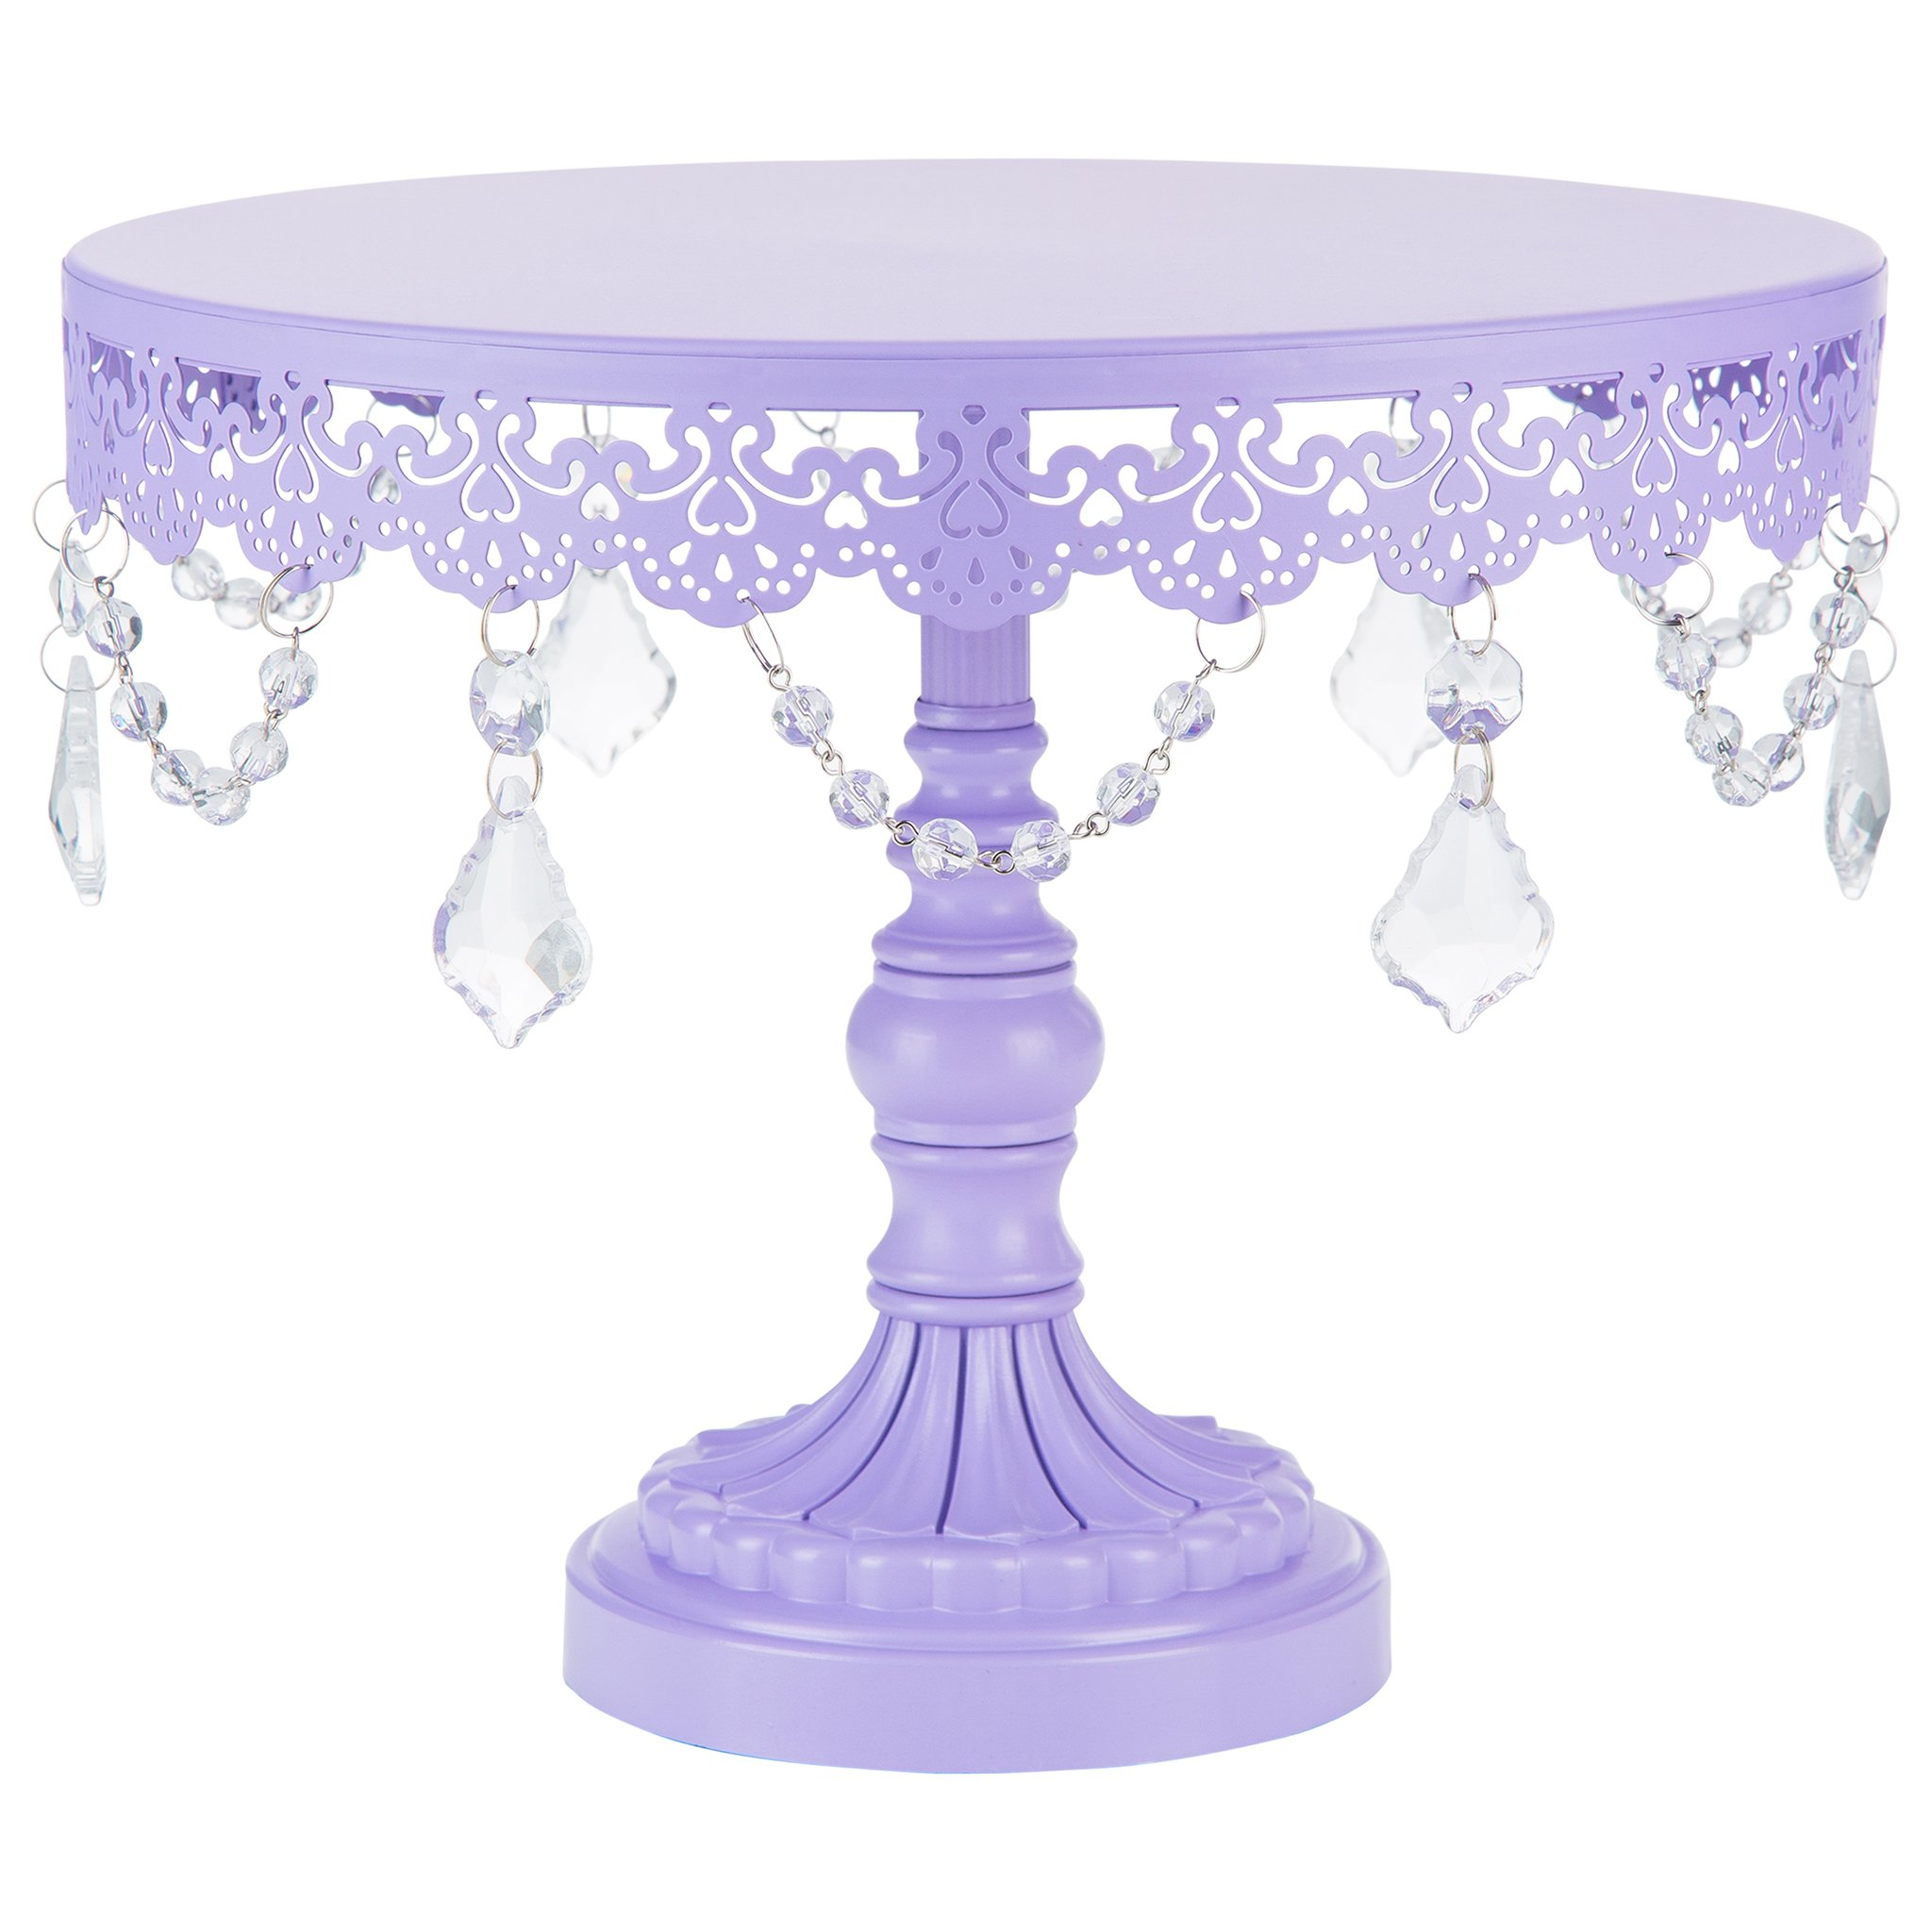 ''Sophia Collection'' Metal Cake Dessert Stand with Crystal Beads and Dangles, 10'' Diameter Plate (Lavender)